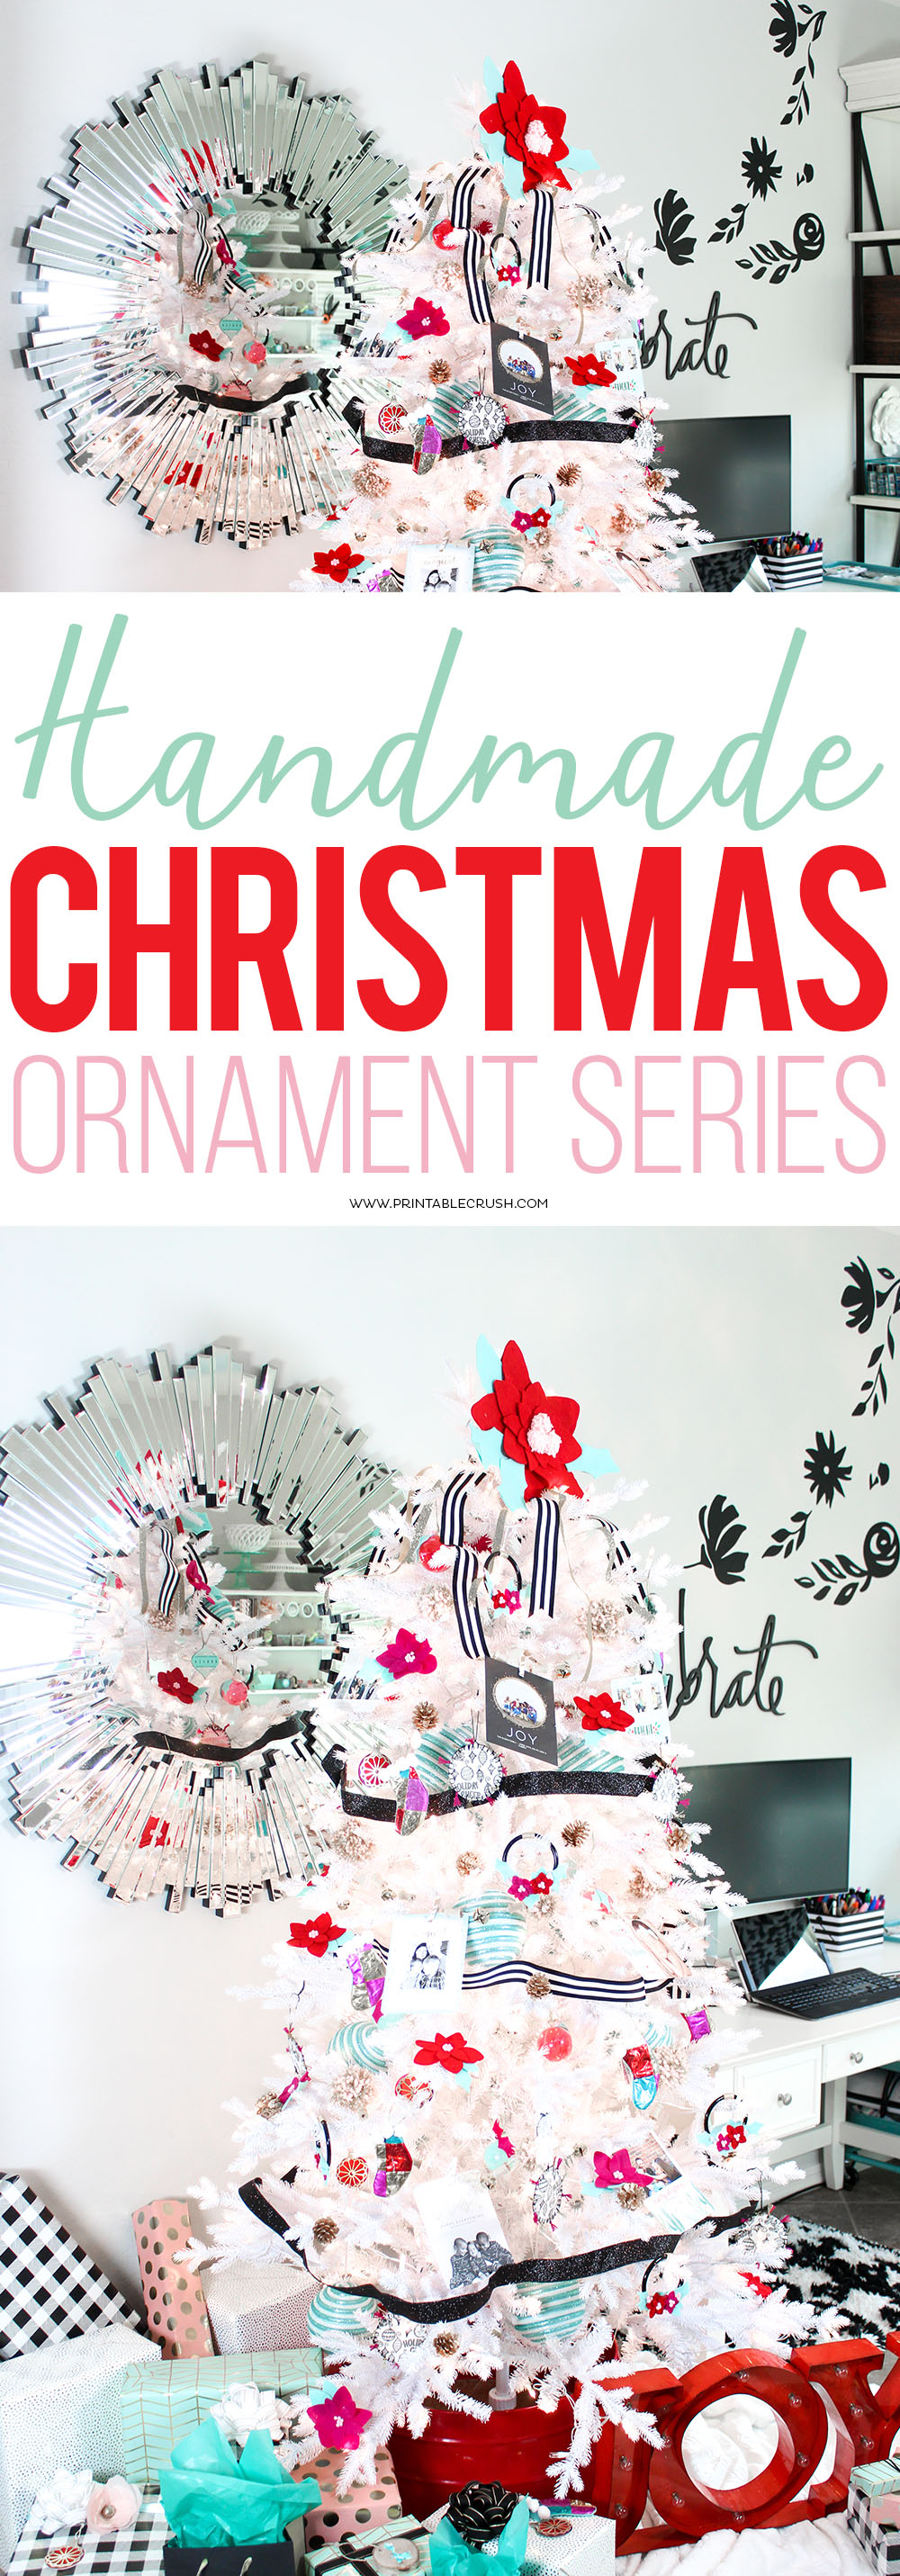 Join in on the Handmade Christmas Ornament Series. I'll be sharing garlands, sewing tutorials, DIY crafts, felt ornaments, and more!